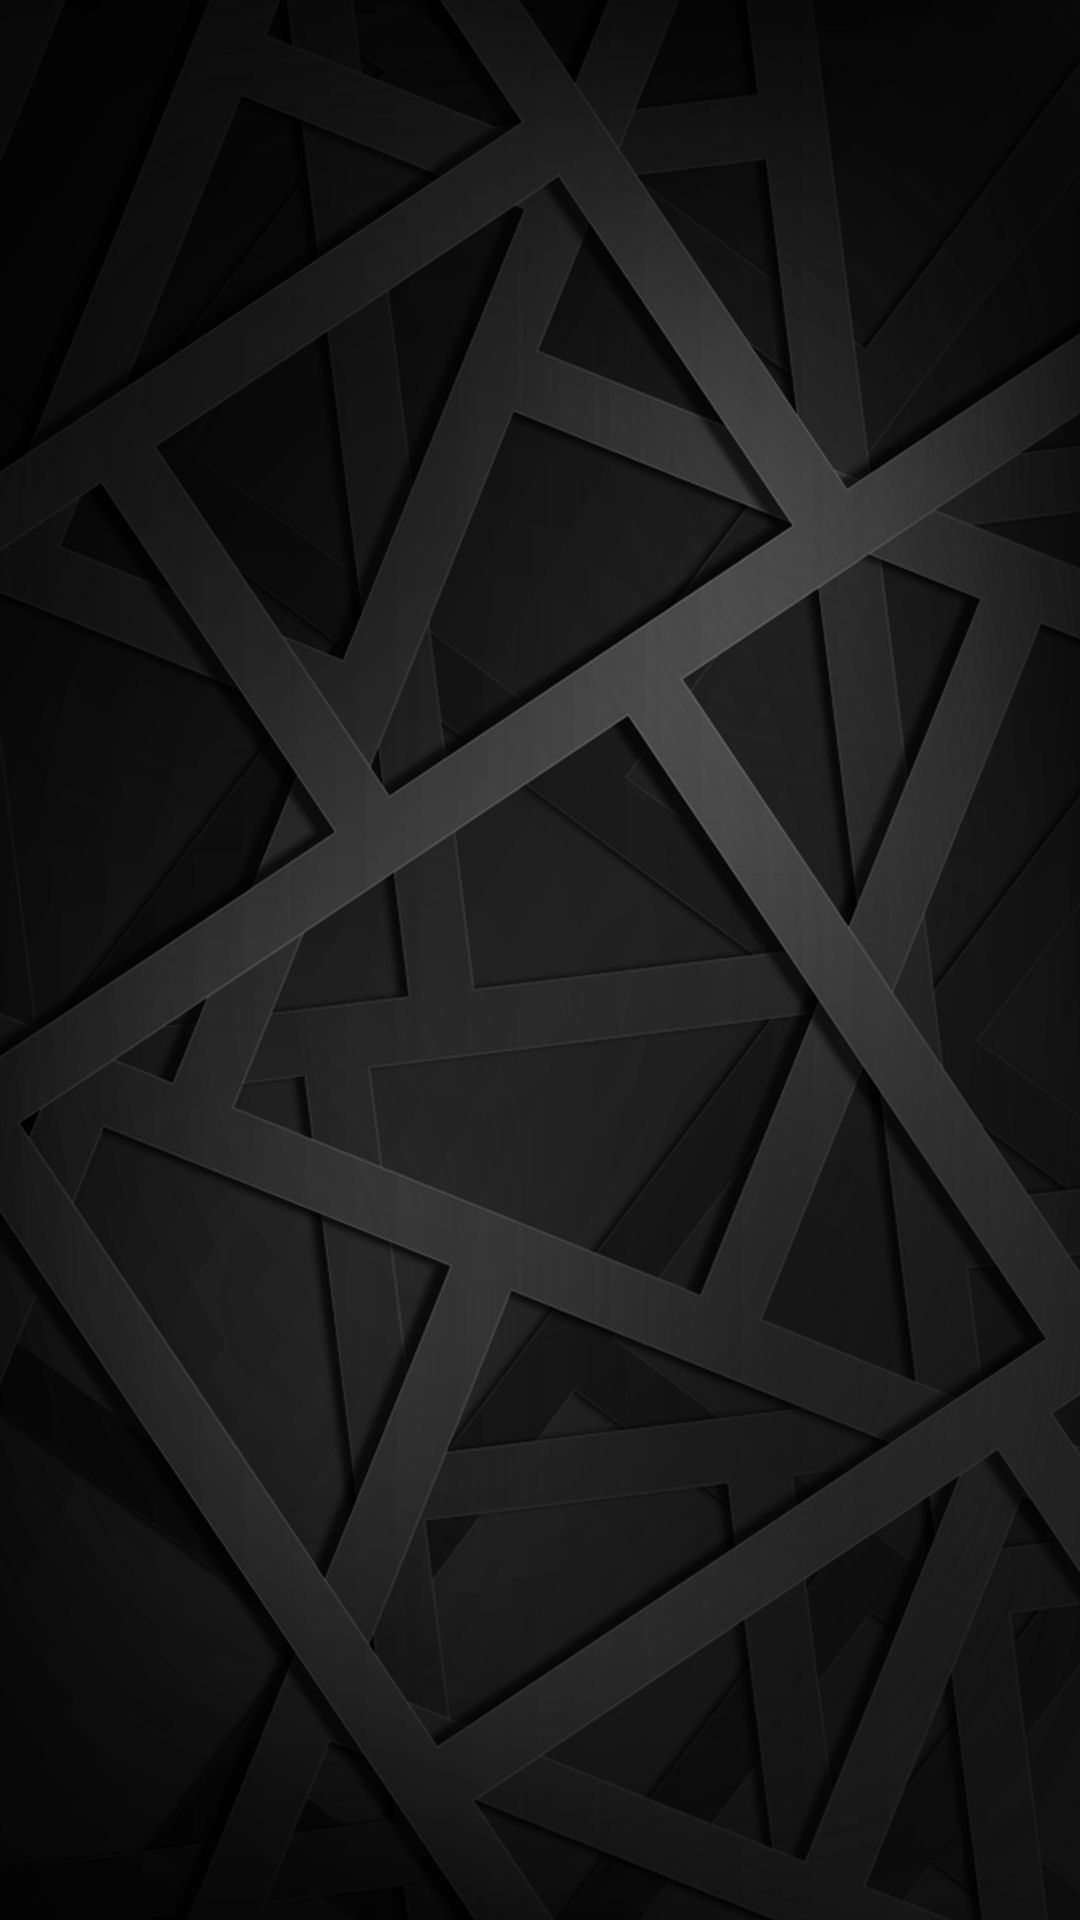 Black Wallpaper 1080p For Iphone Wallpaper On Hupages Com If You Like It Dont Forget Black Phone Wallpaper Geometric Wallpaper Iphone Android Wallpaper Black